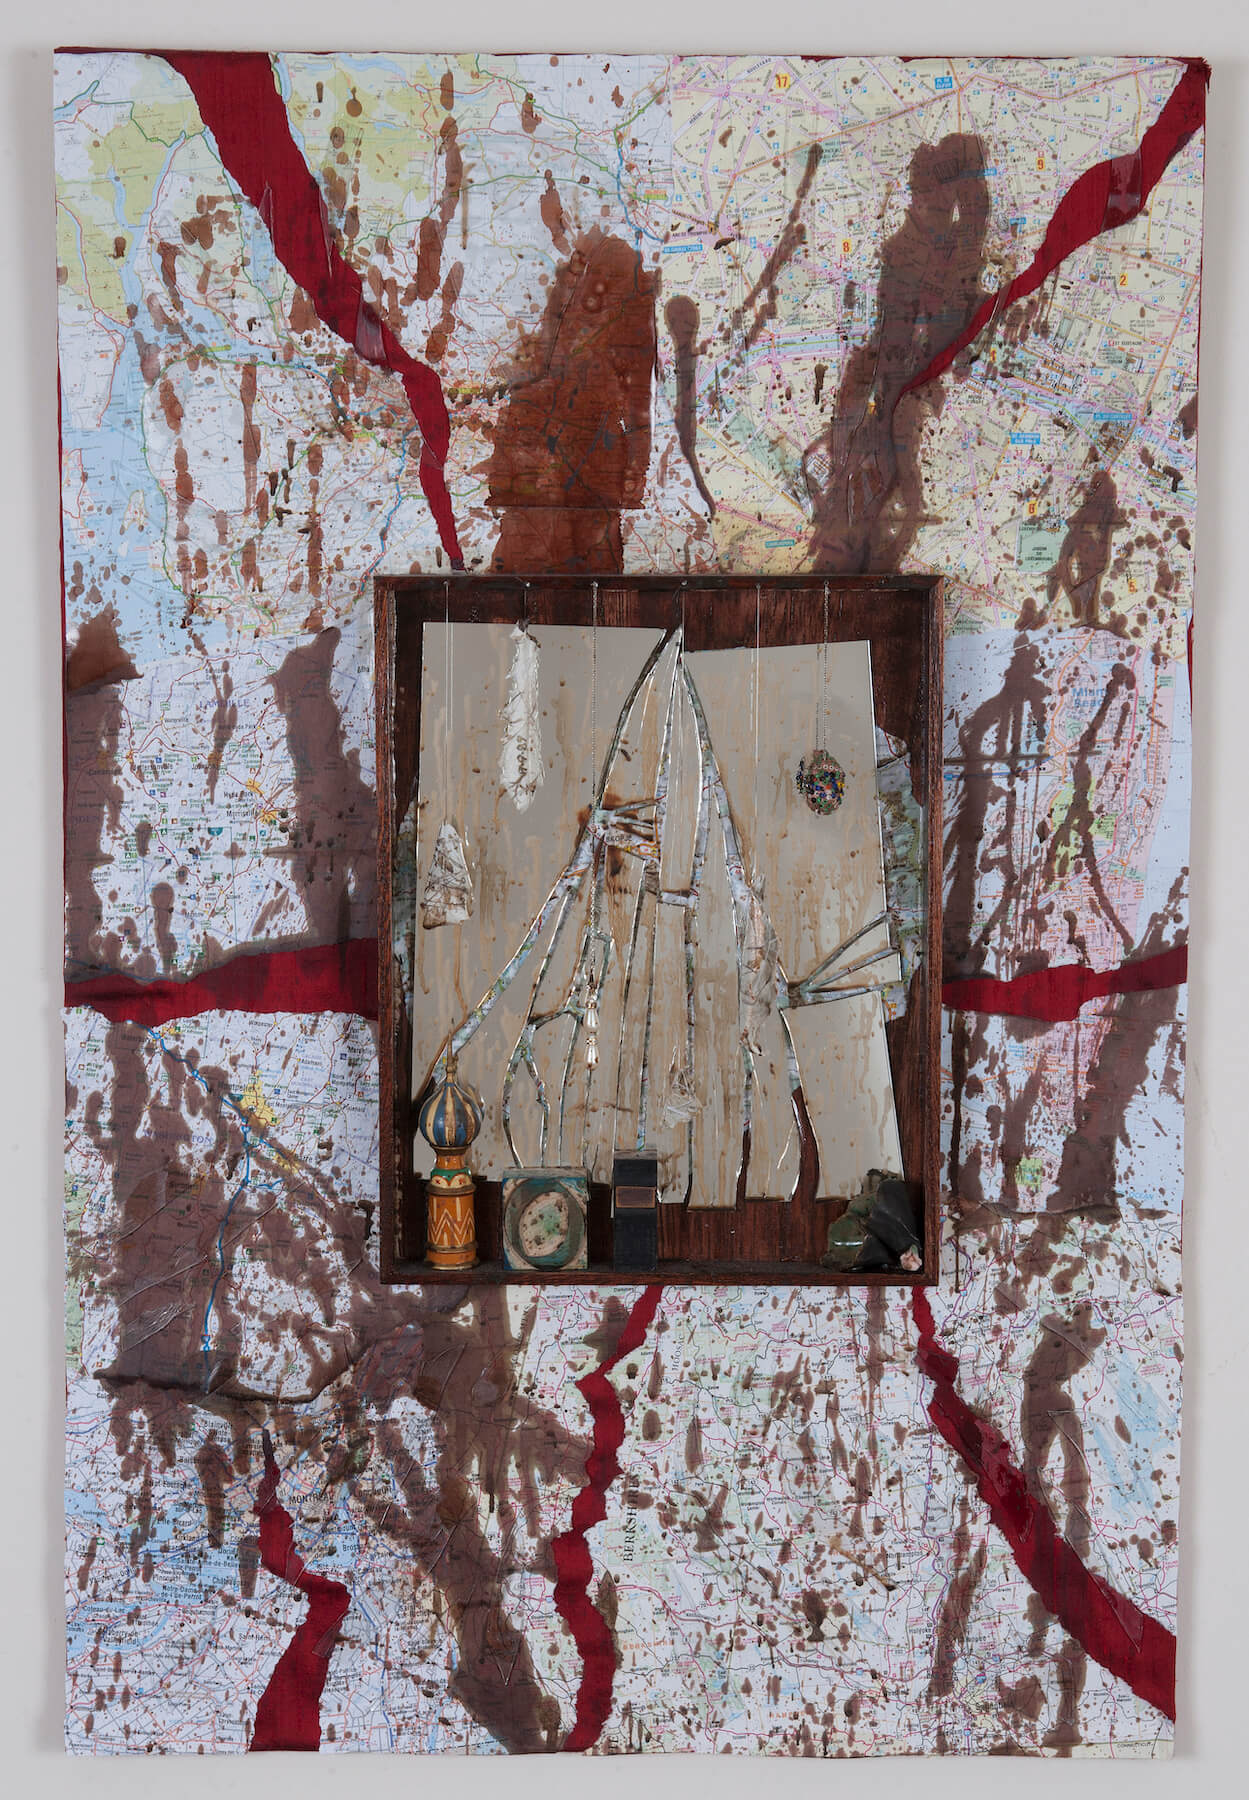 A mixed media artwork that features an abstract background in red, white and brown and a centered altarpiece. The altarpiece background is made of shattered glass and small objects are placed on the bottom ledge of the altar.